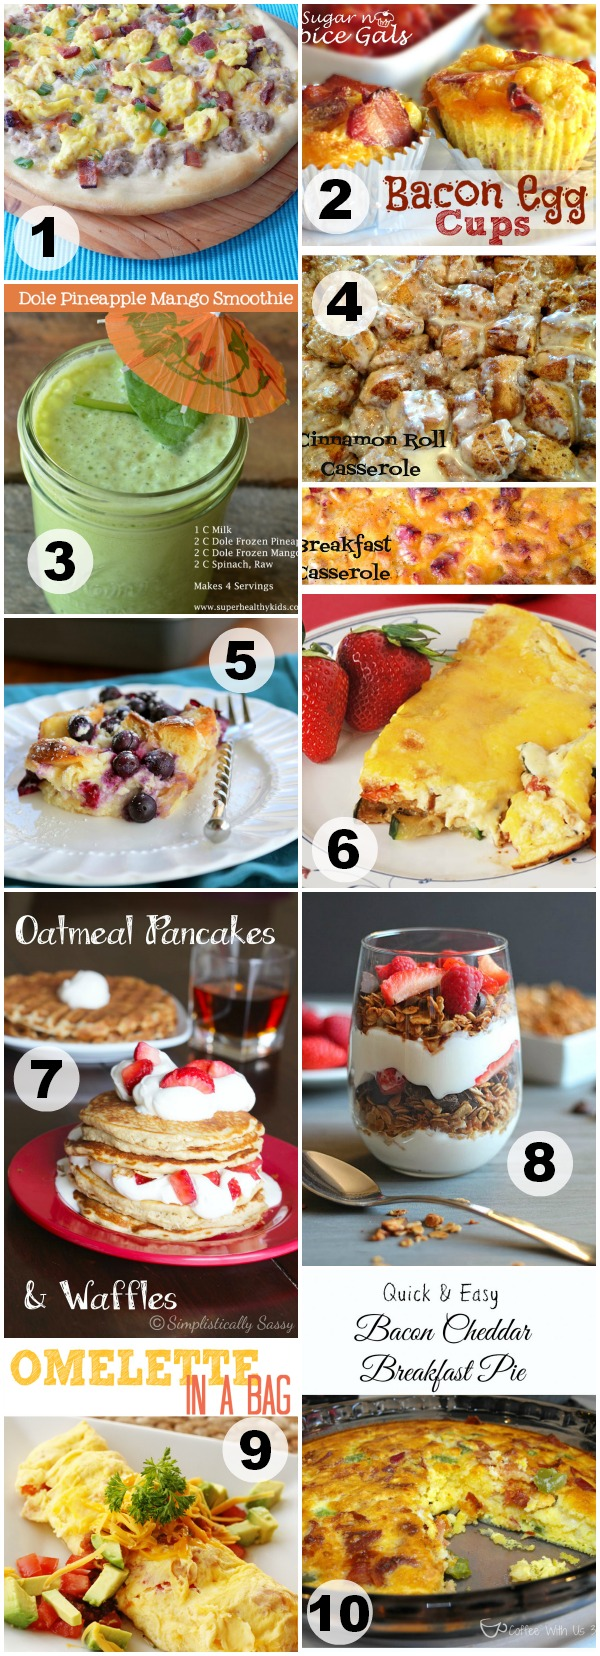 Brunch Recipes - Events To Celebrate